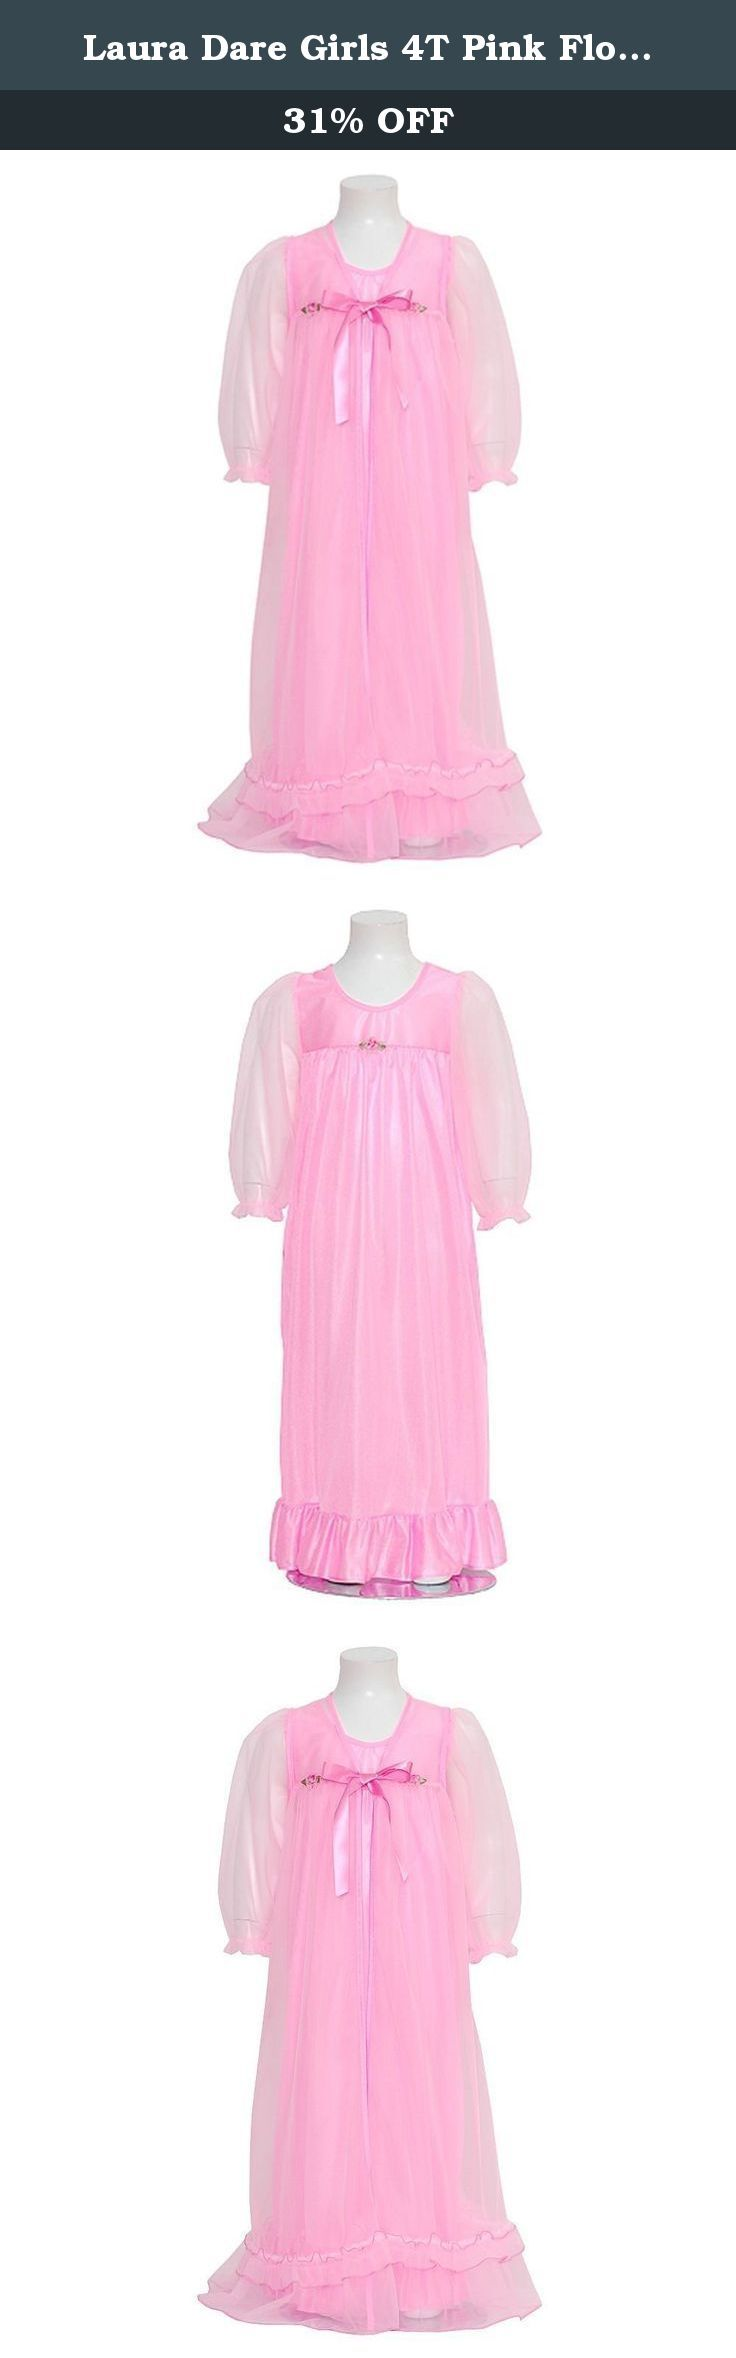 Laura Dare Girls 4T Pink Floral Peignoir 2pc Robe Nightgown. An adorable Peignoir set for your little girl from Laura Dare. She'll feel so grown up in this 2pc sheer frilly set. The sheer robe is trimmed in ruffles and ties with a soft ribbon at the neck. Soft ribbon flowers ar attached along the neckline. Completing this set is a shimmery nightgown with spaghetti straps. Great for her first sleepover or any special girls time.